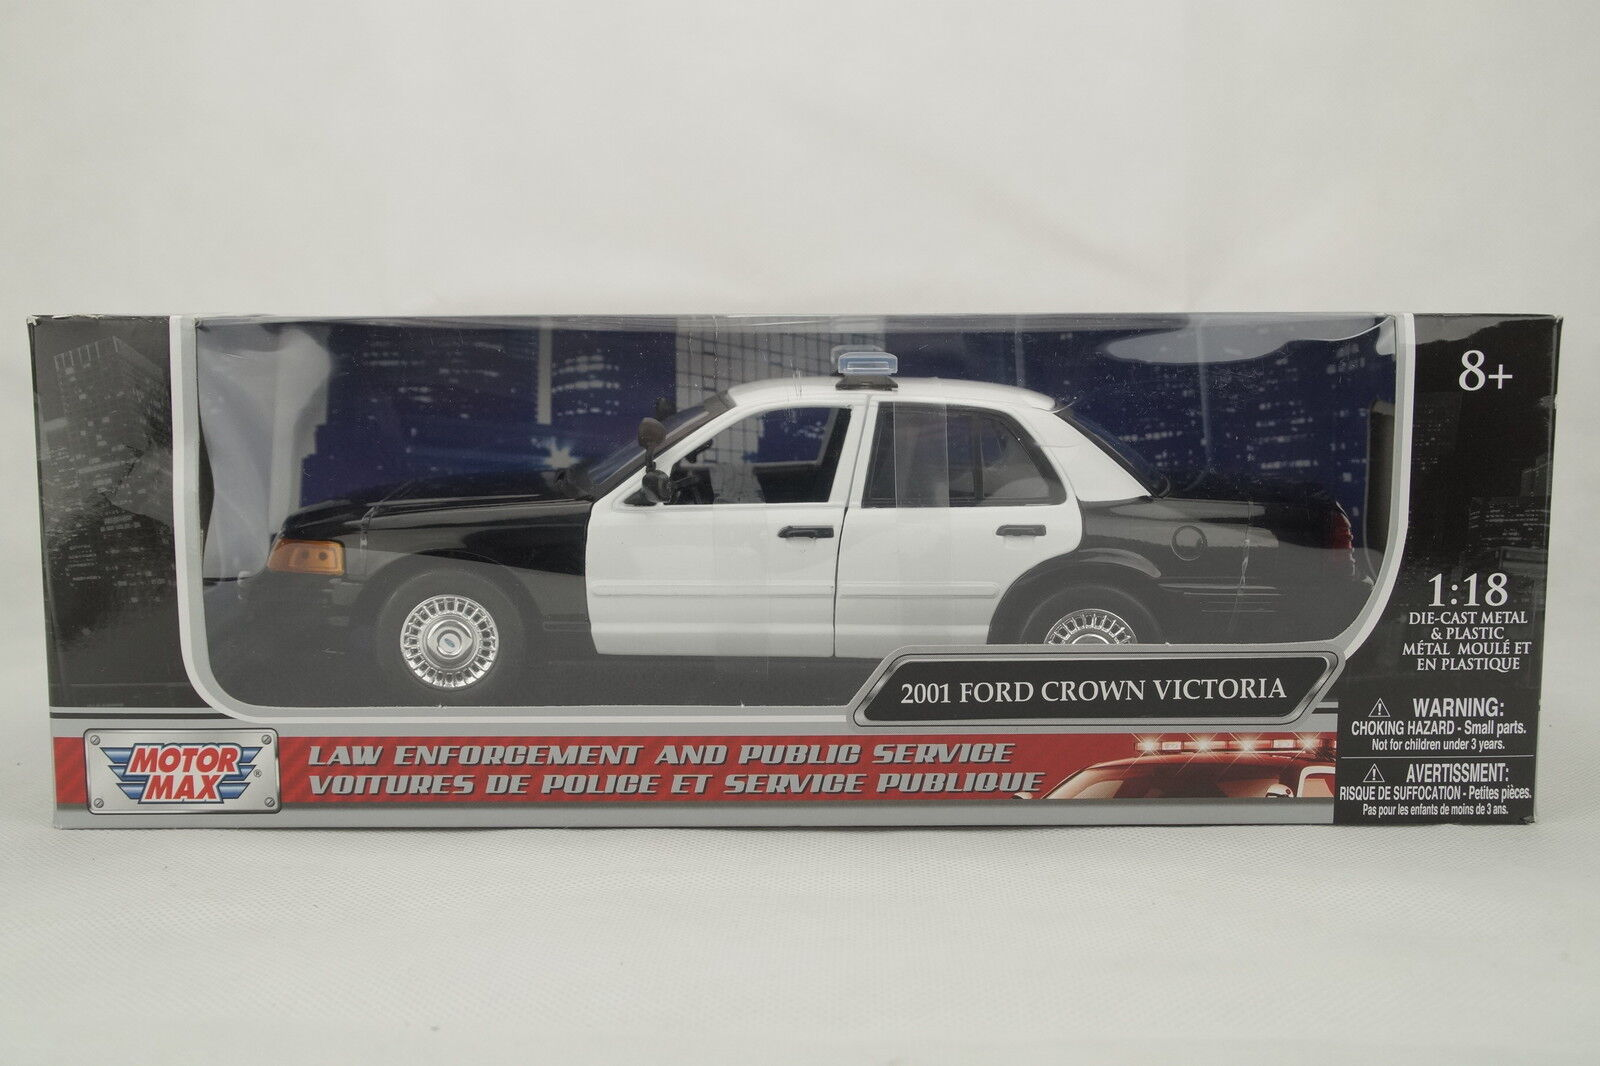 "1 18 Engine Max - 2001 Ford Crown Victoria Toys Lapd Police Car "" Clean Ver Rar-"